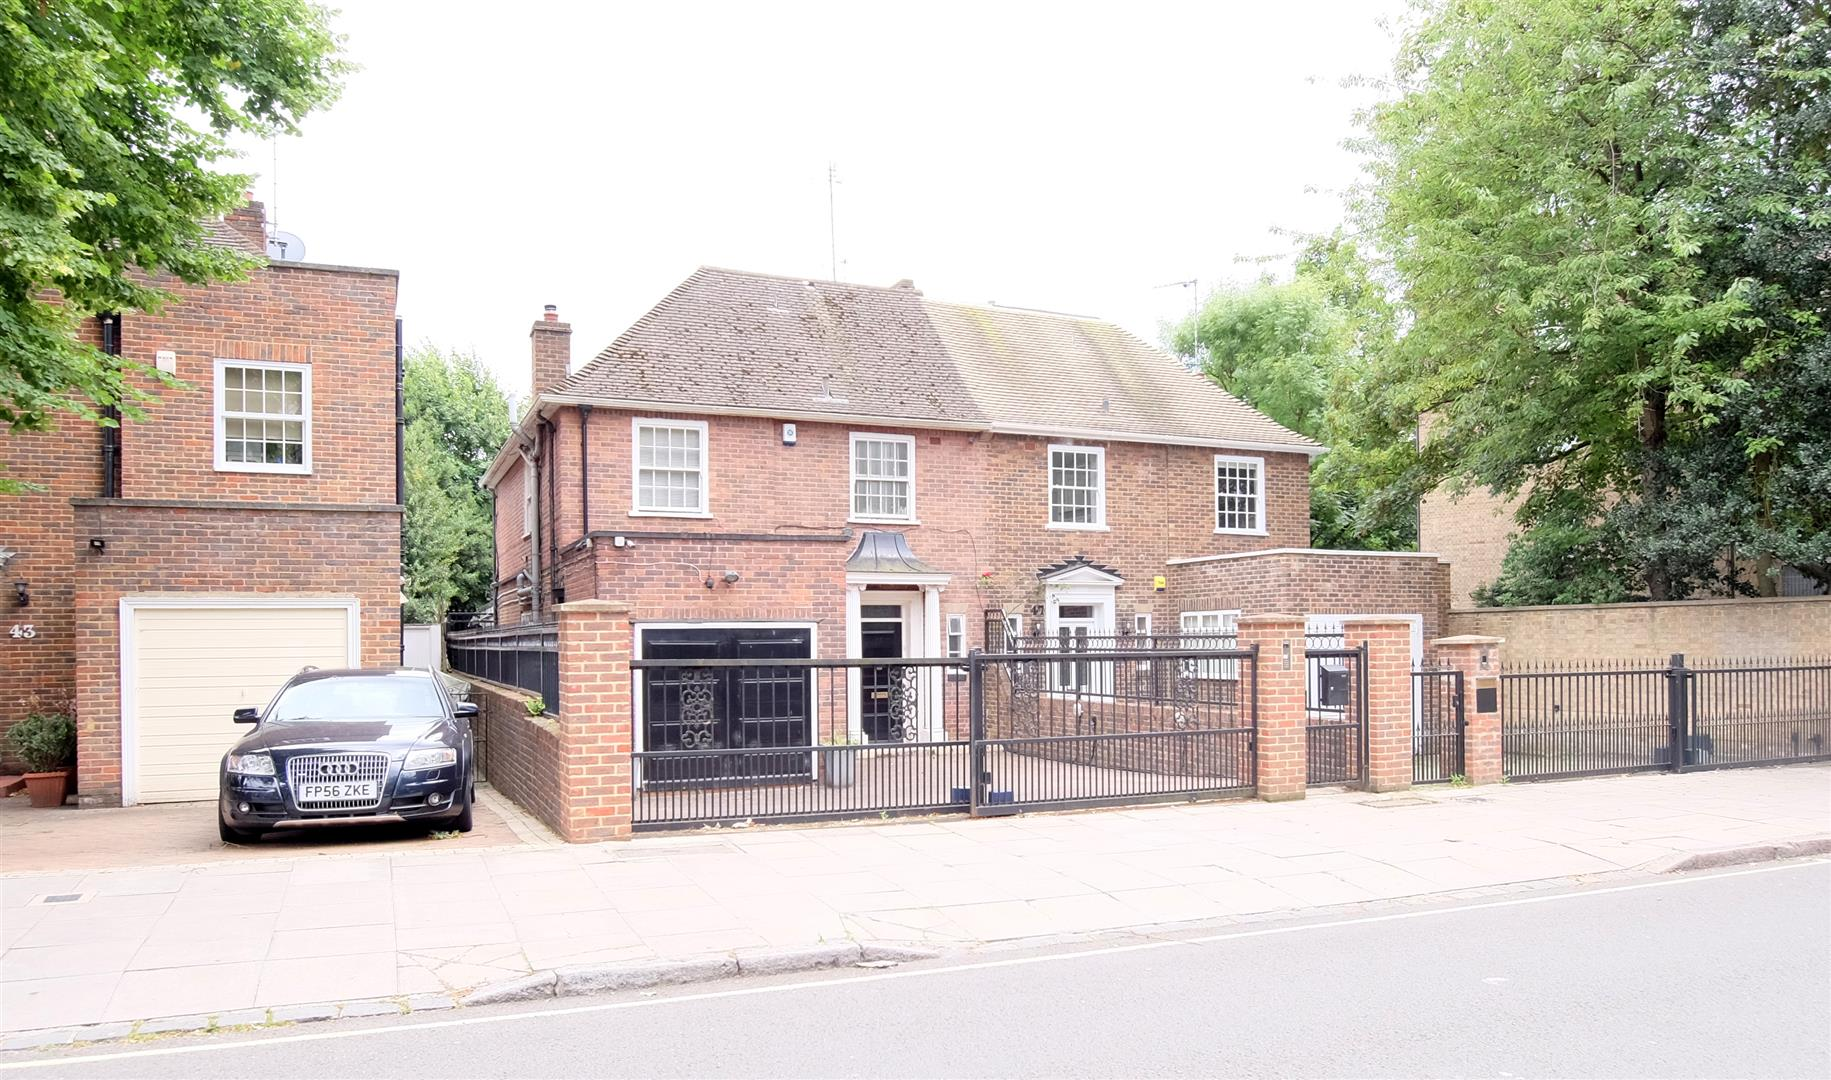 4 Bedrooms House for sale in Boundary Road, London